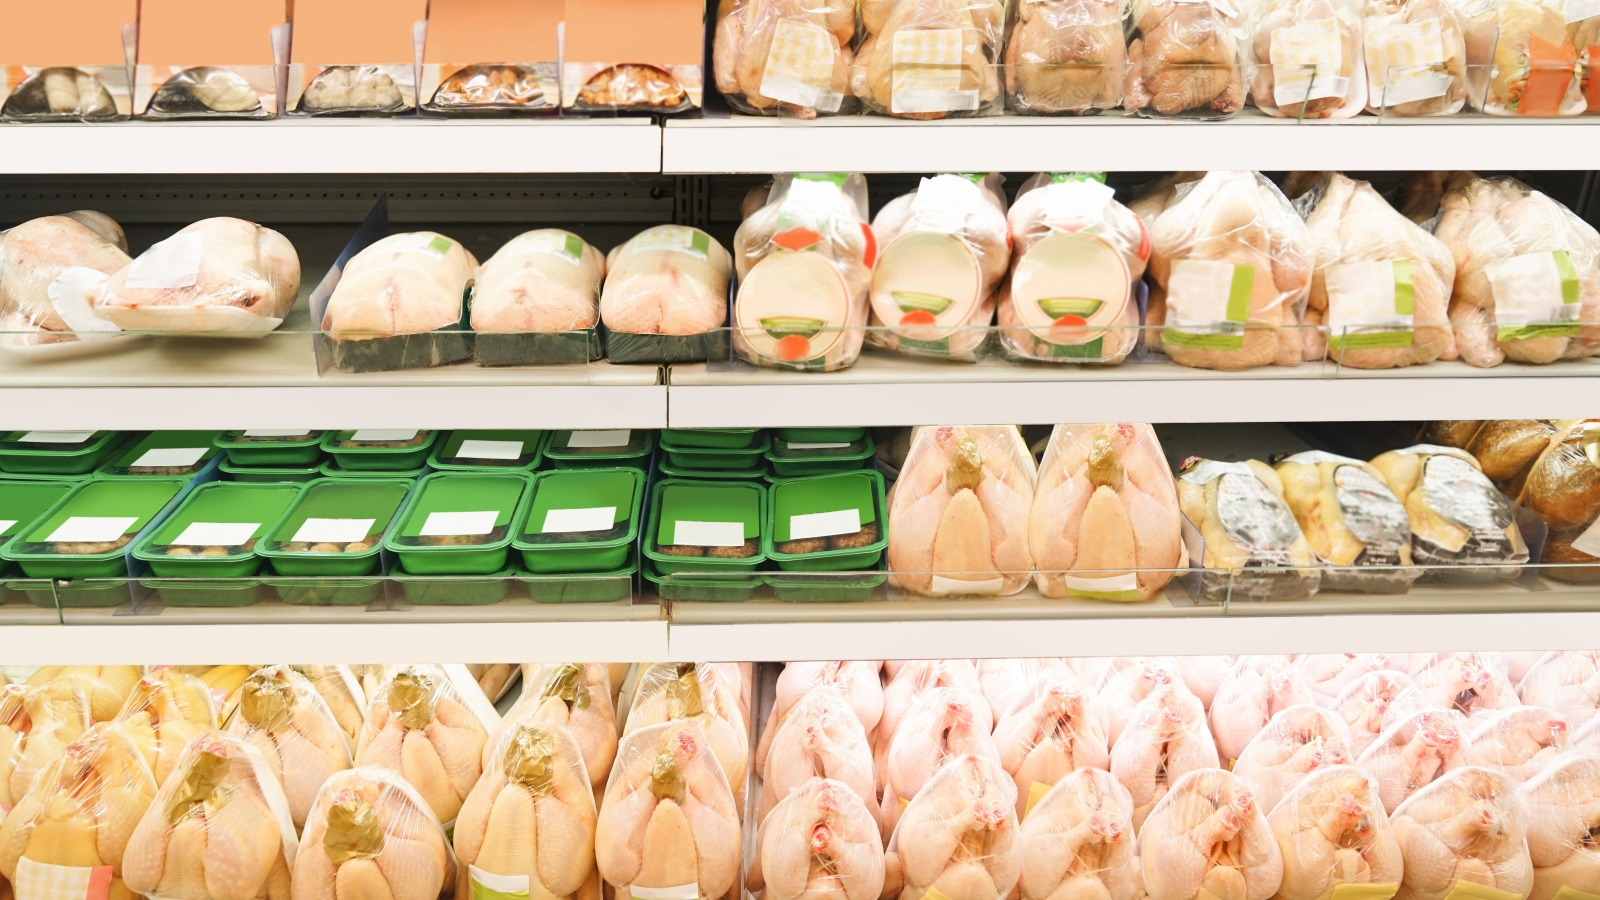 Why You Should Think Twice About Buying Poultry From Kroger